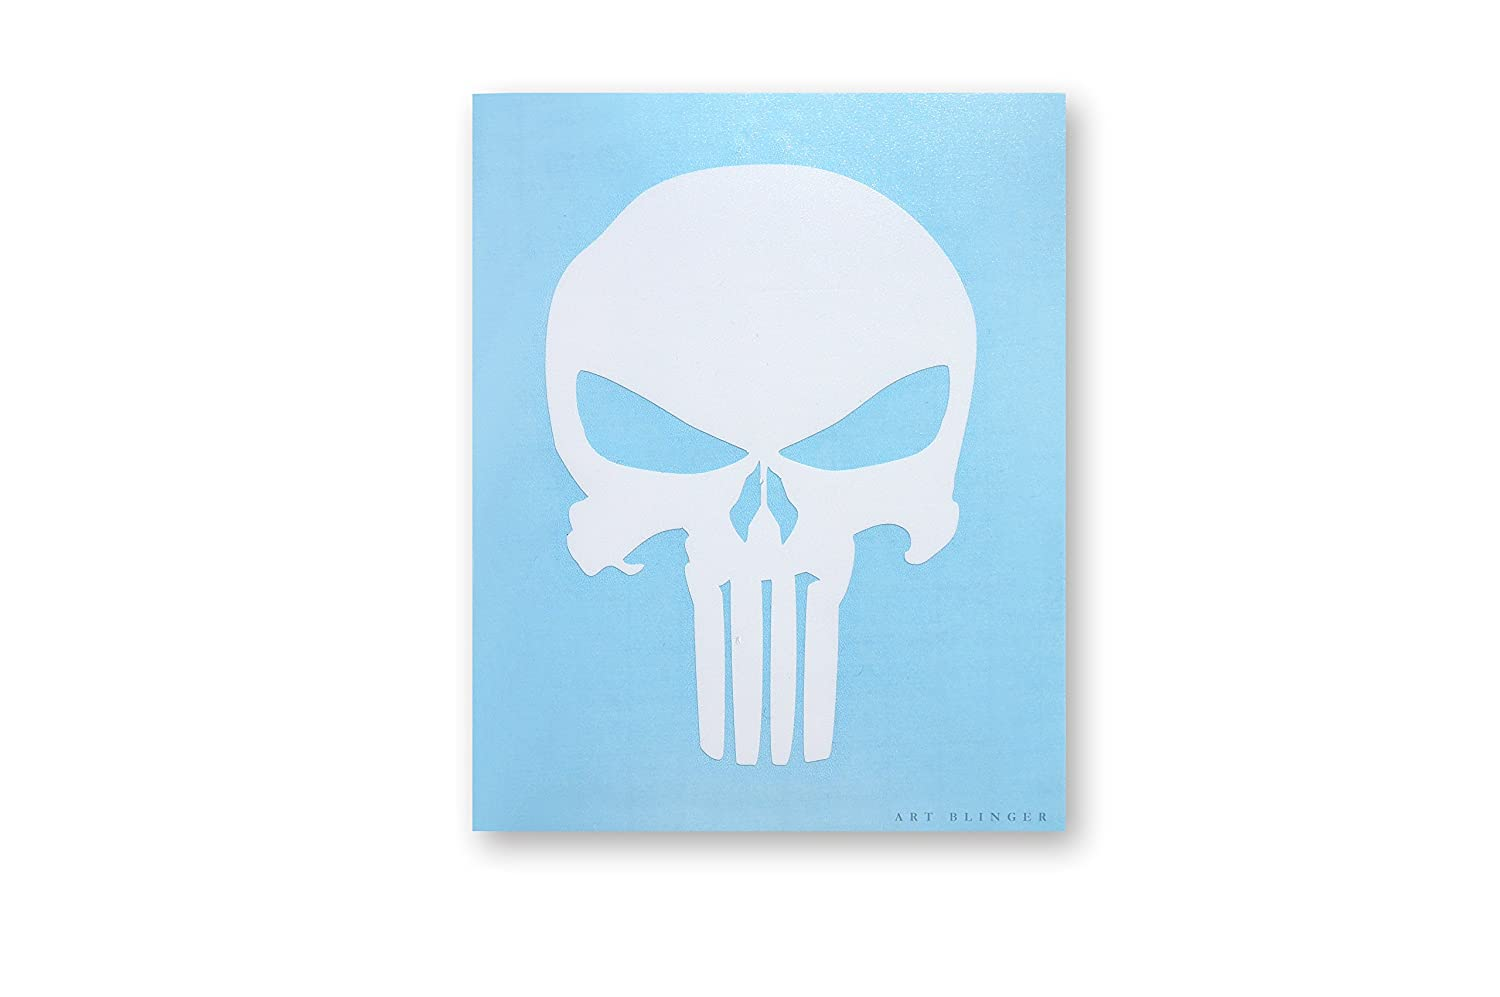 """The PUNISHER Skull crâne White blanc Rub-On Sticker autocollant Marvel Comics Officially Licensed Movie & TV Artwork Création, 5.75"""" x 4.5"""" - Long Lasting Sticker autocollant"""